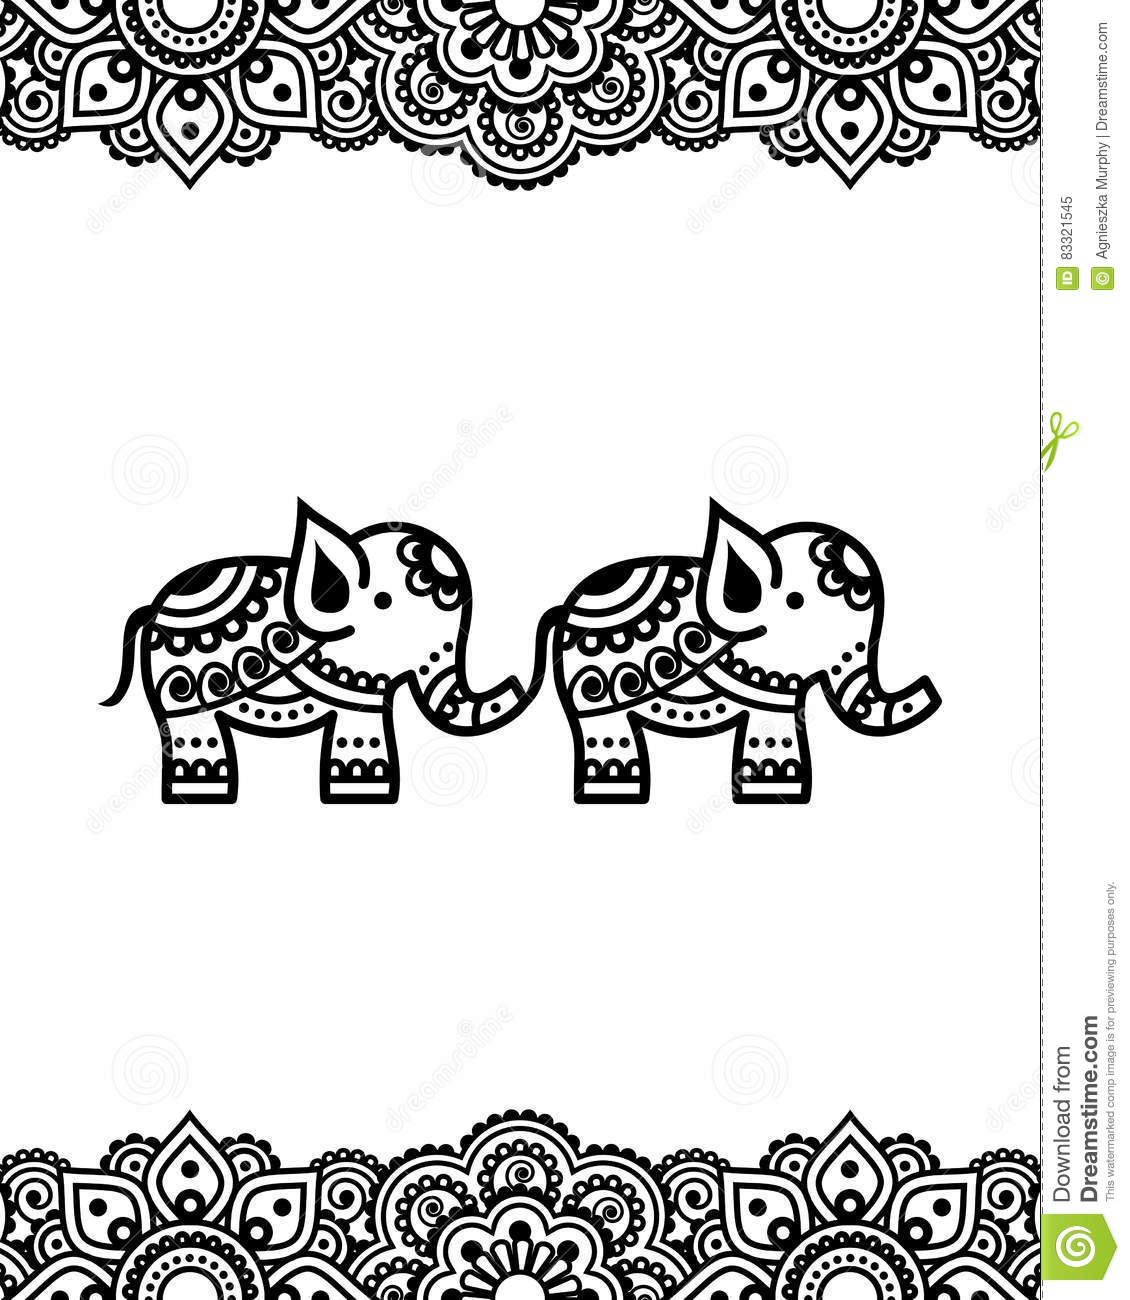 Mehndi Indian Henna Tattoo Design With Elephants Stock Illustration